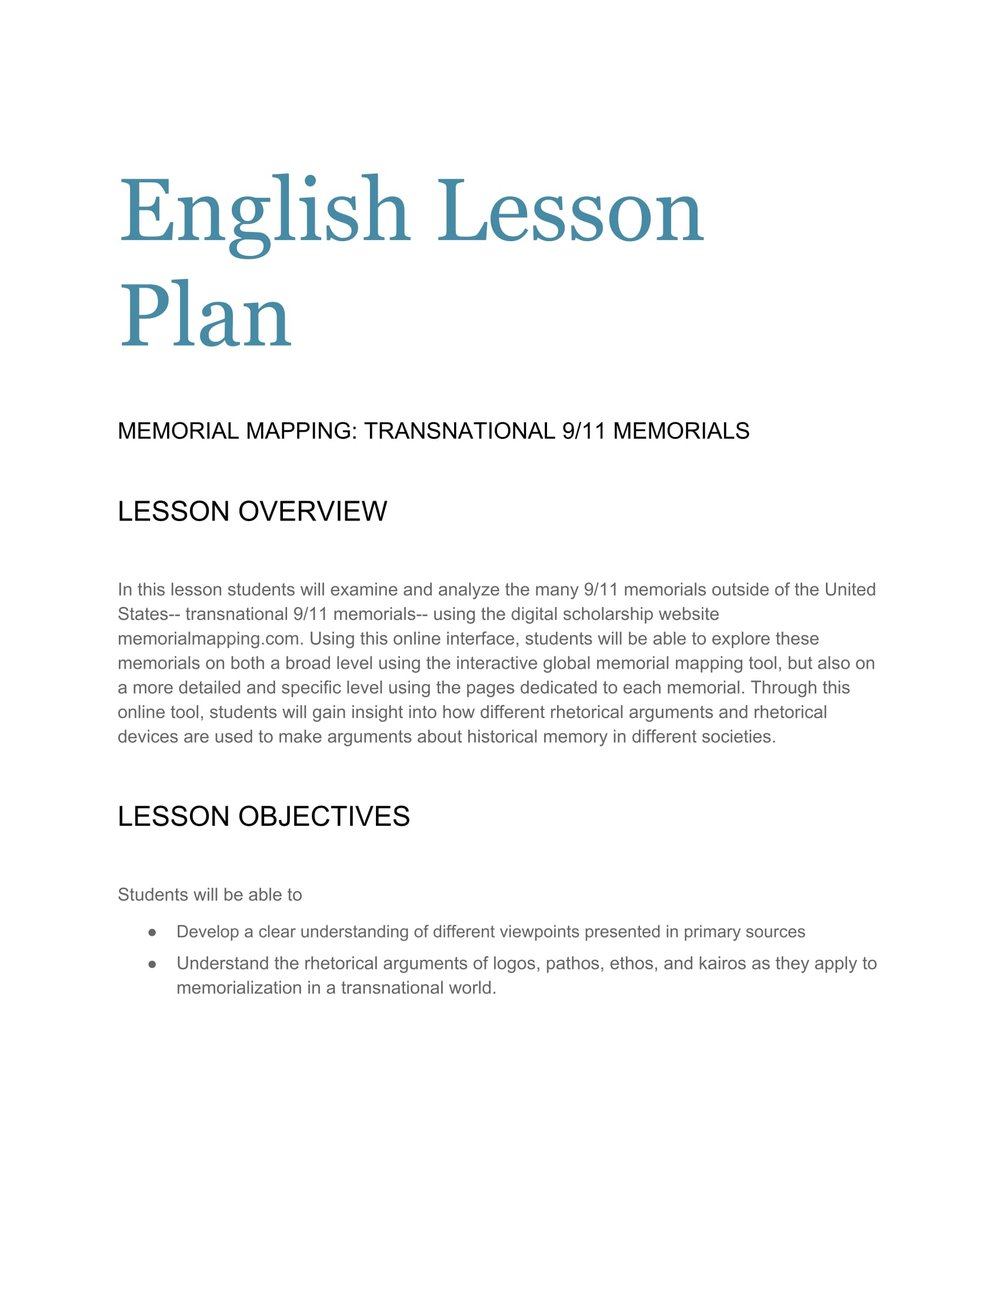 English Lesson Plan Final-1.jpg